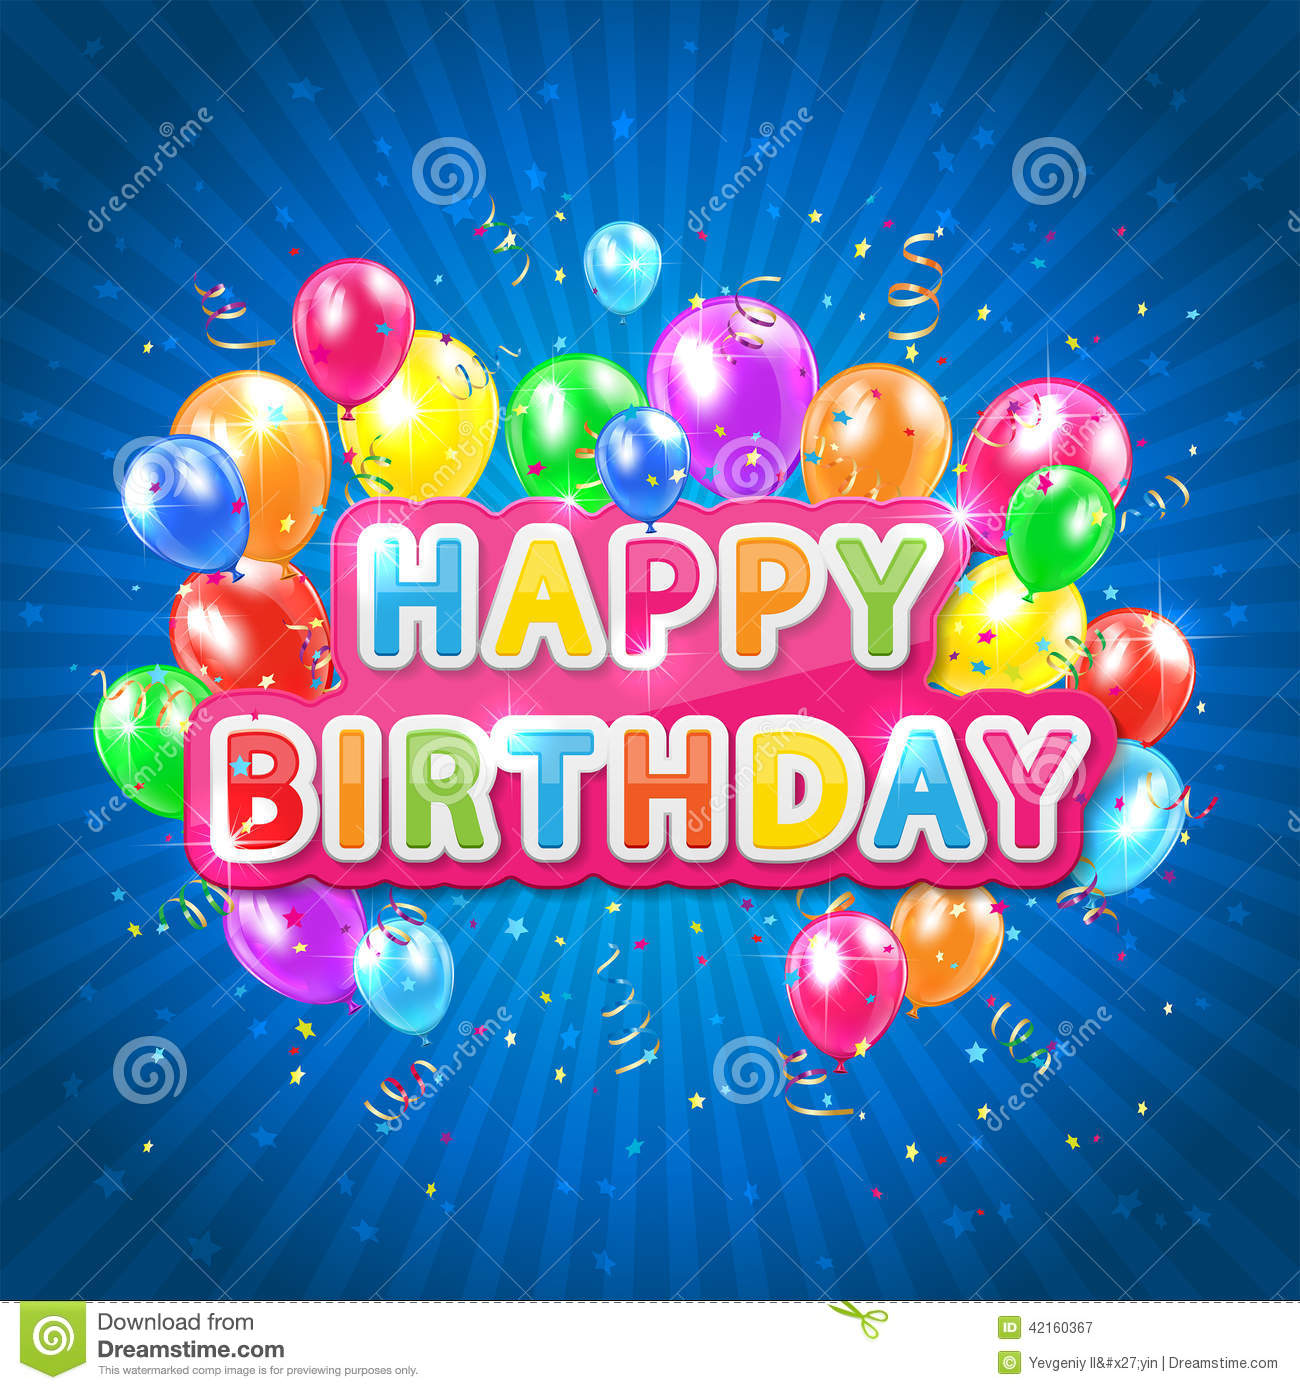 happy birthday blue images ; happy-birthday-blue-background-words-balloons-confetti-tinsel-striped-illustration-42160367